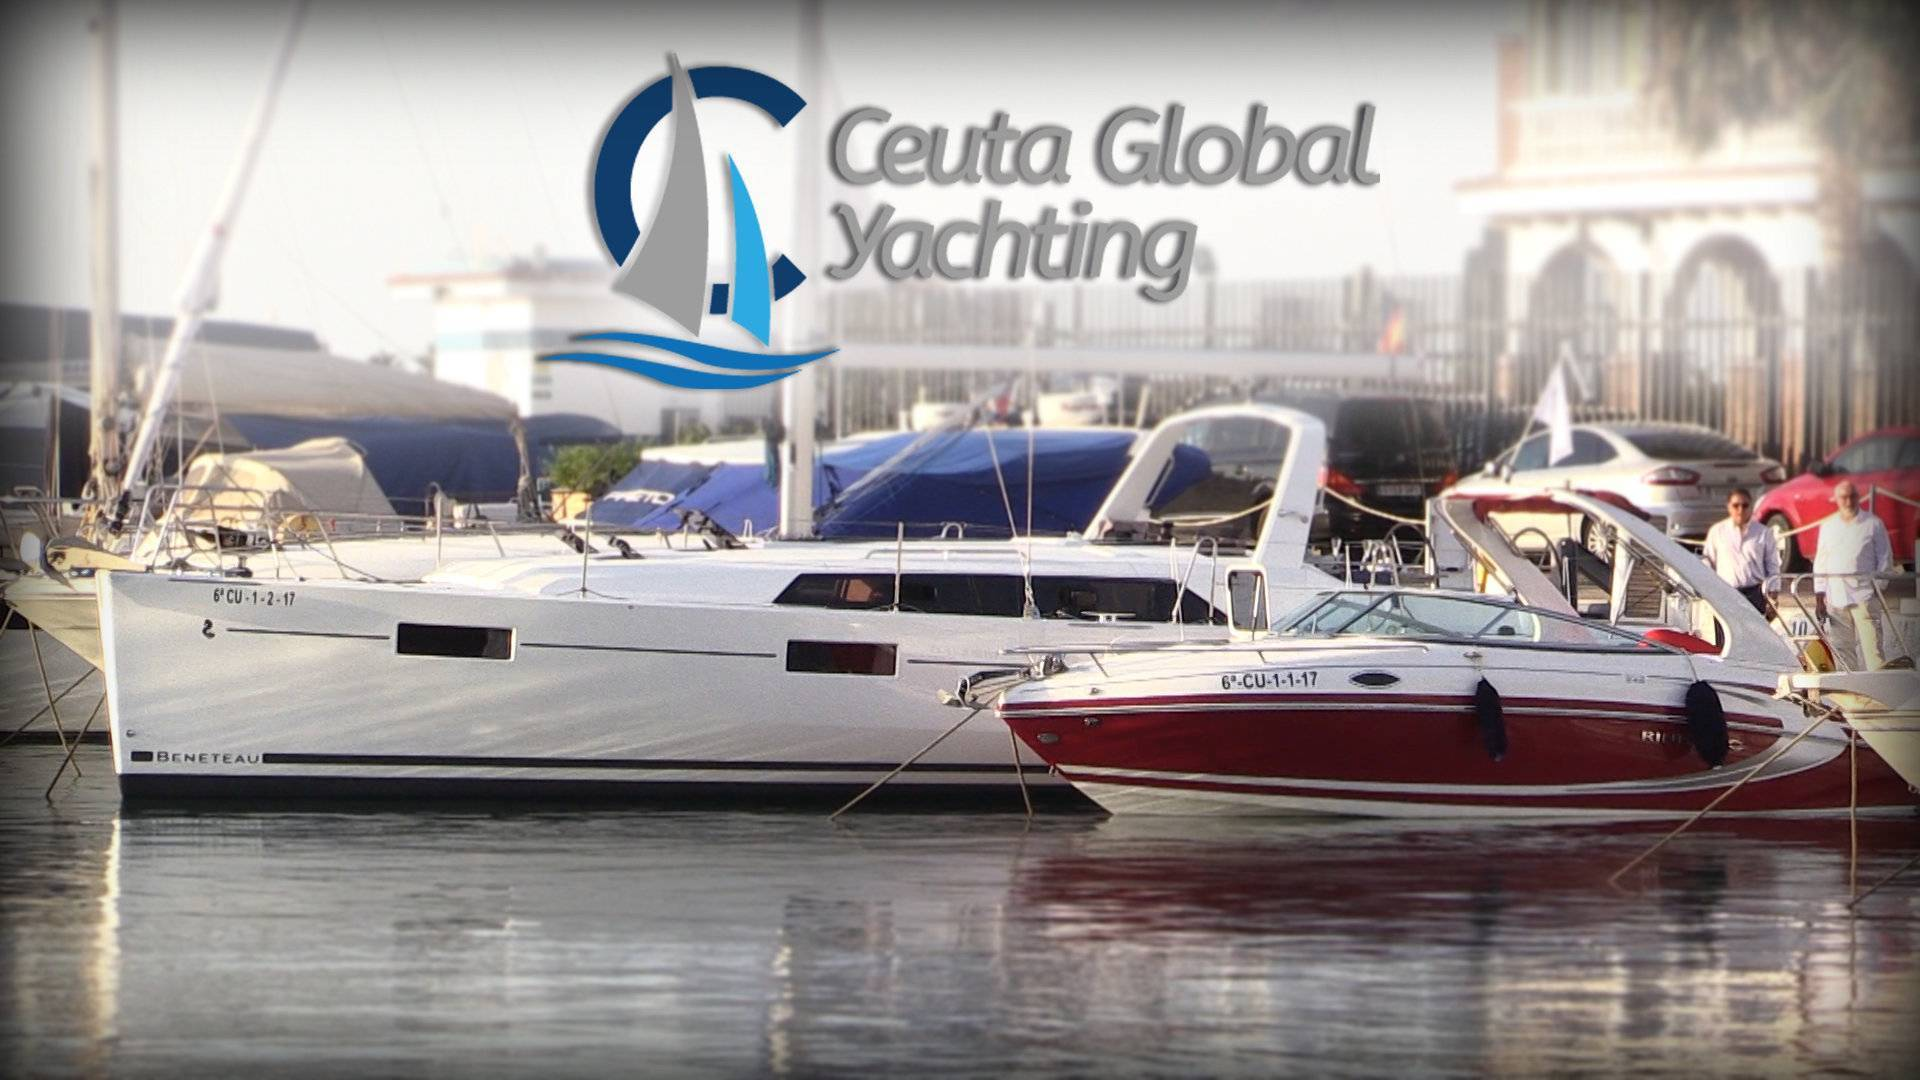 Ceuta Global Yachting